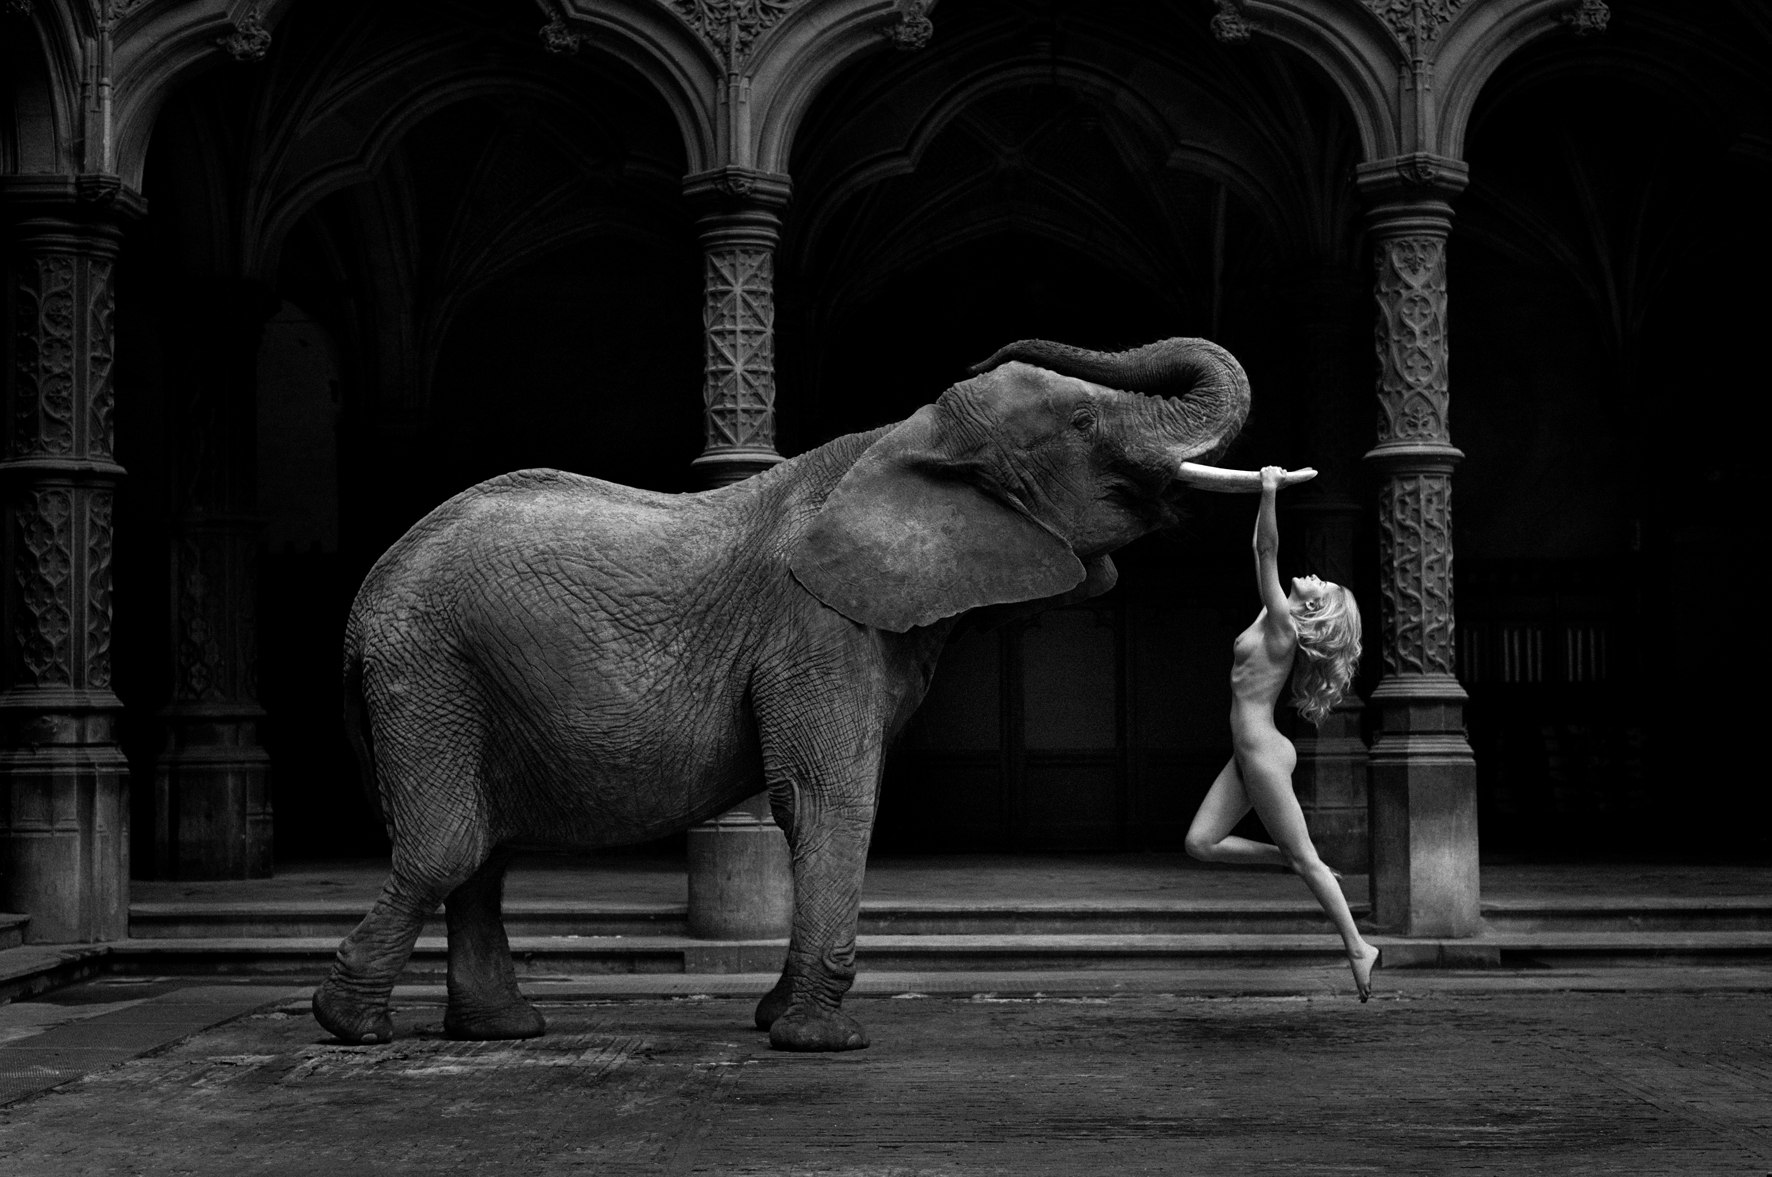 © Senza Parole by Marc Lagrange, to be published by teNeues in September 2015, www.teneues.com. Tusk, Photo © 2015 Marc Lagrange. All rights reserved.